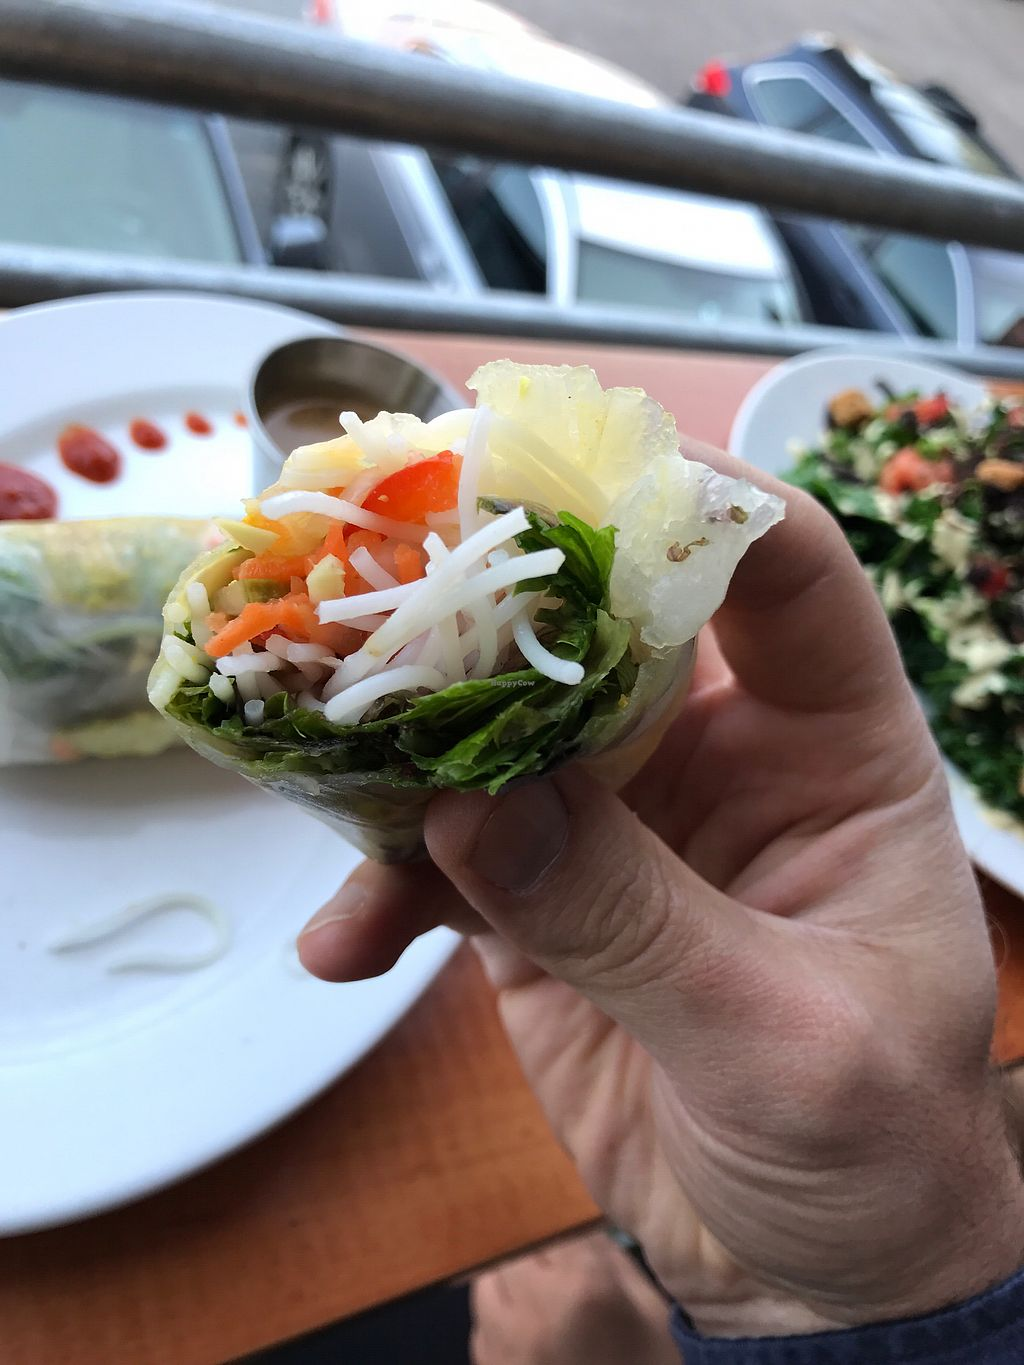 """Photo of Pingala Cafe  by <a href=""""/members/profile/SimonBodzioch"""">SimonBodzioch</a> <br/>Delicious fresh roll (raw food) <br/> September 12, 2017  - <a href='/contact/abuse/image/45669/303469'>Report</a>"""